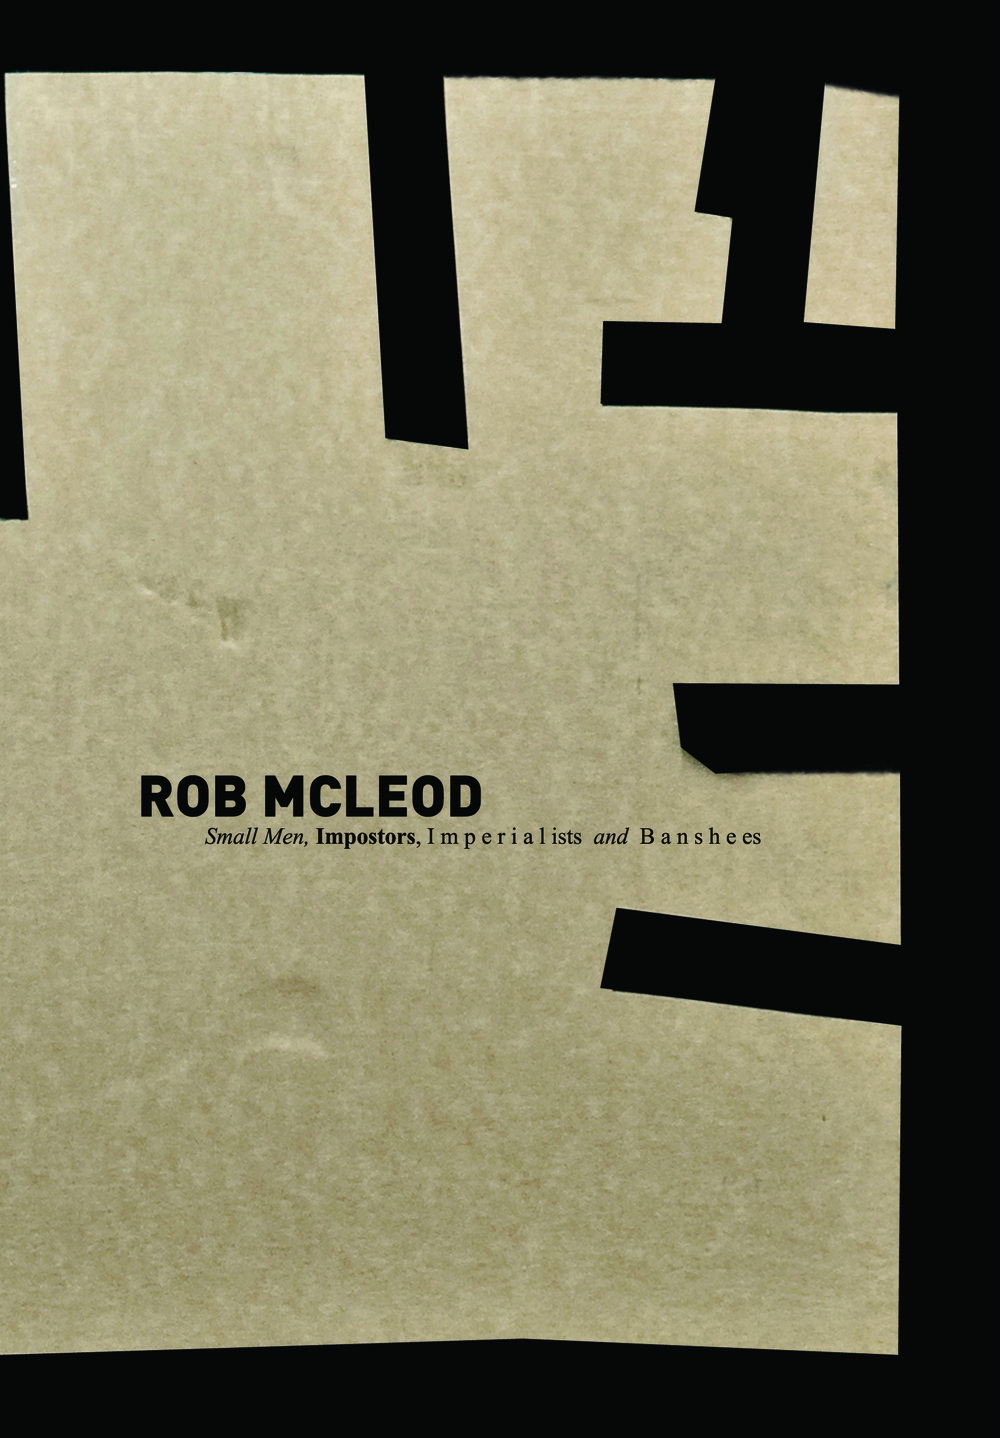 Robert McLeod, Small Men, Impostors, Imperialists and Banshees